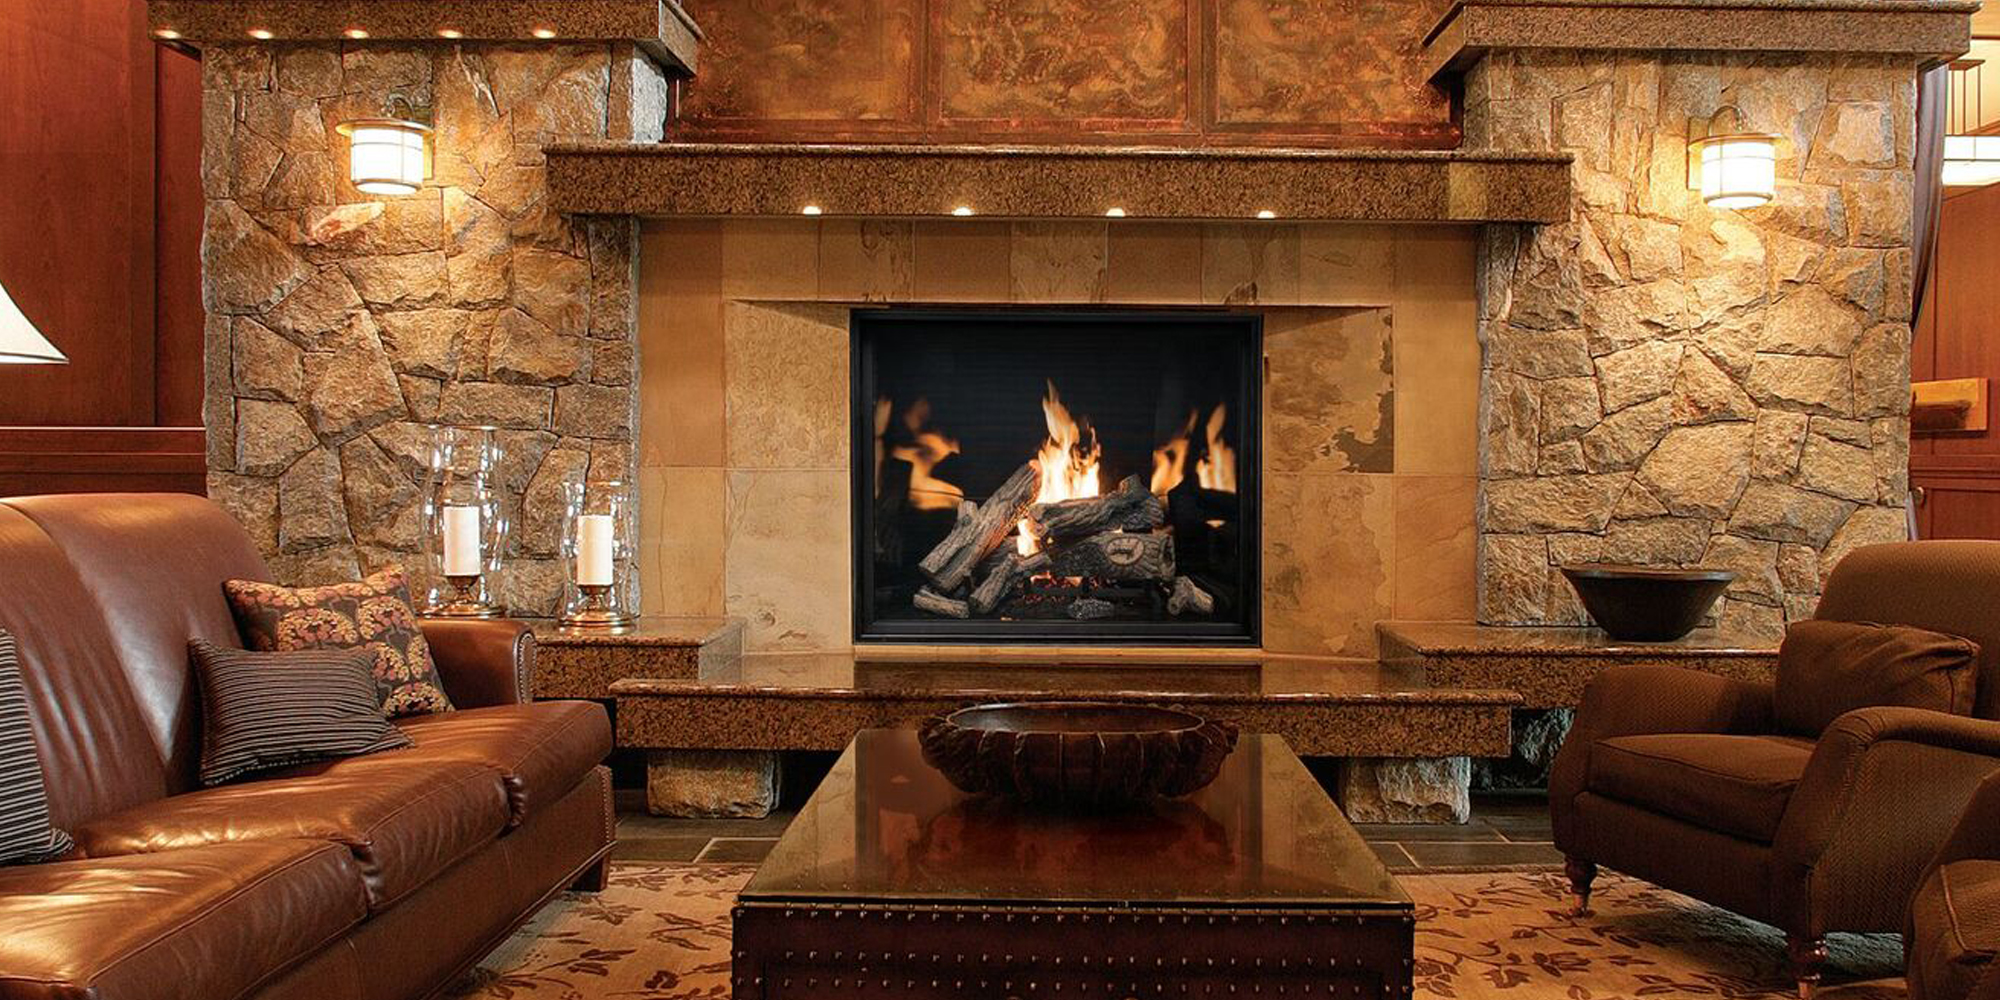 NATIONAL FIREPLACES & AIR SYSTEMS